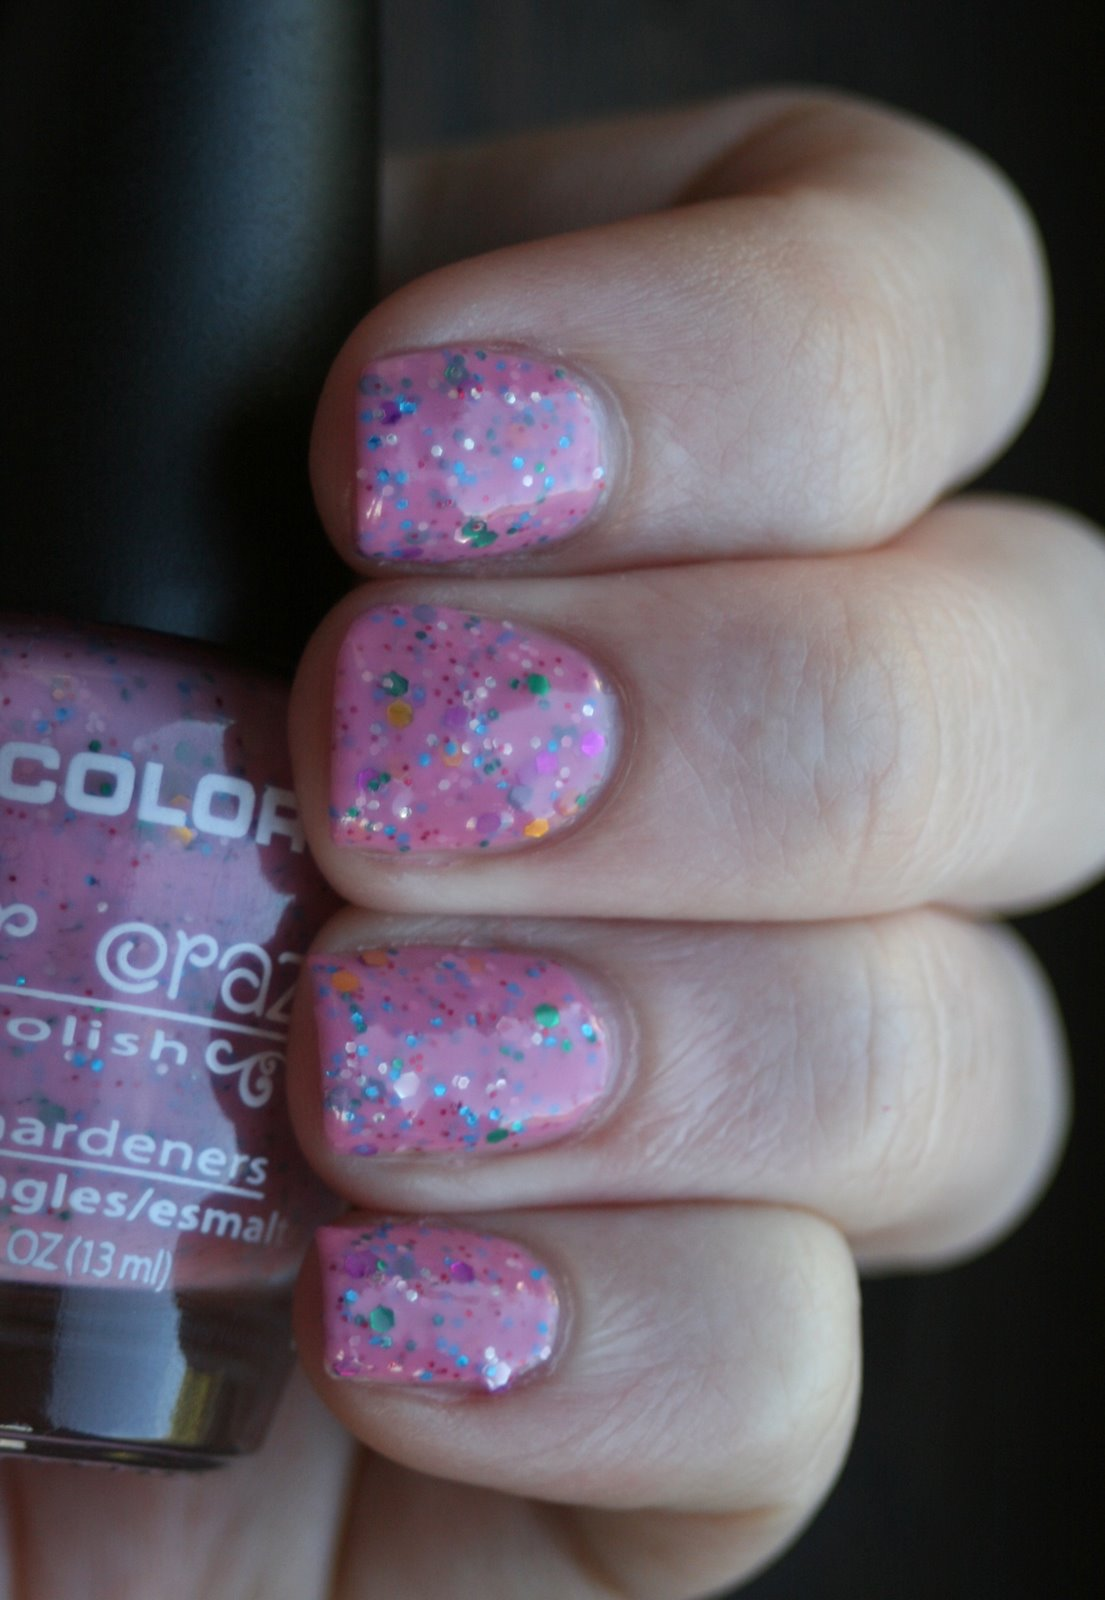 LA Colors Candy Sprinkles swatch